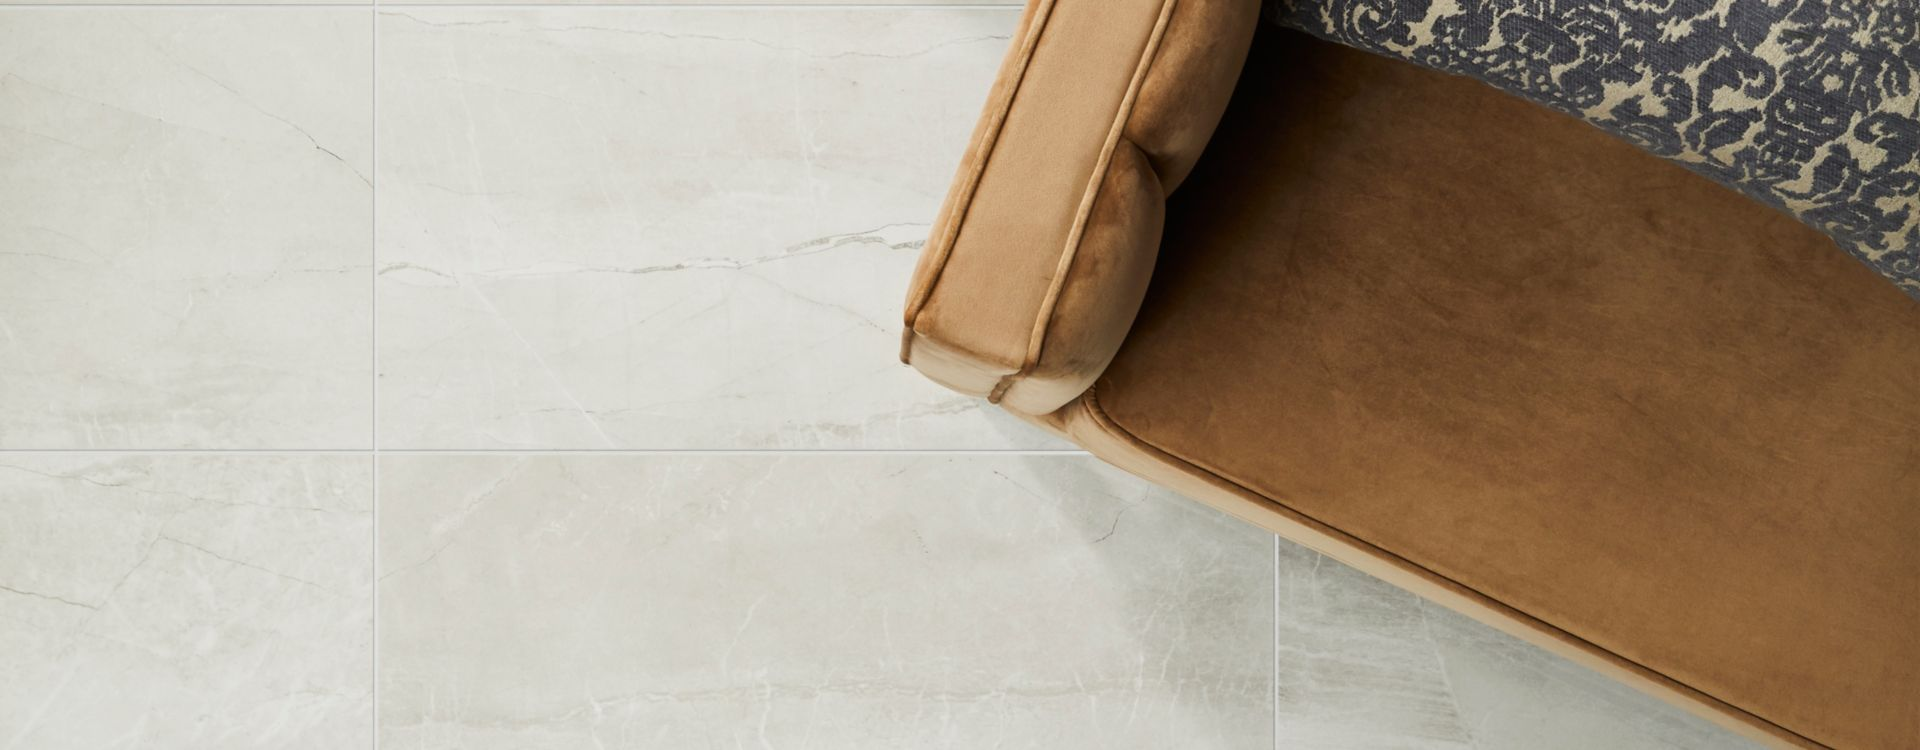 how to lay tile a detailed guide to